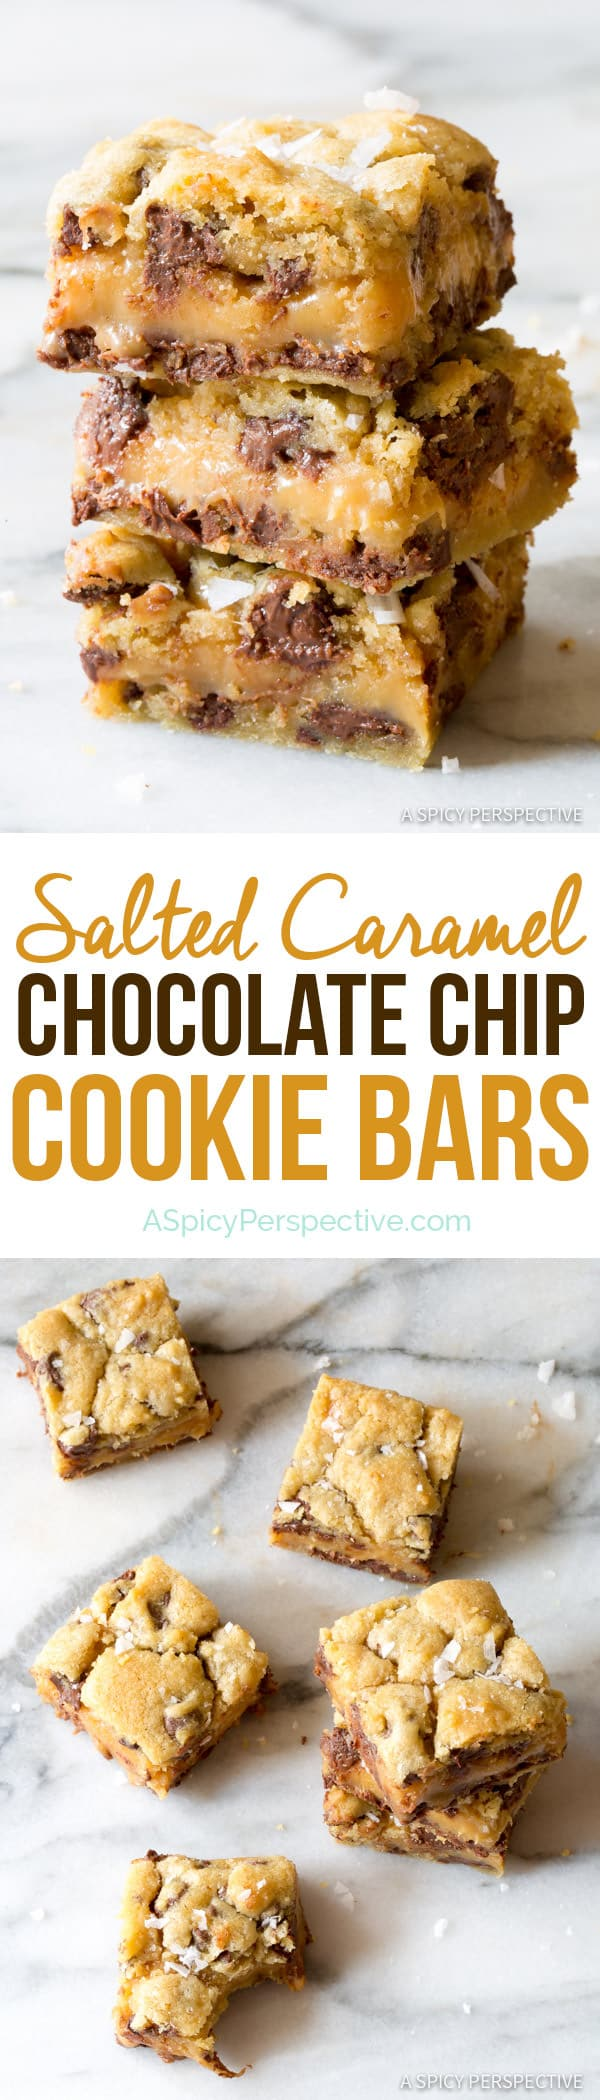 Salted Caramel Chocolate Chip Cookie Bars - Page 2 of 2 - A Spicy ...